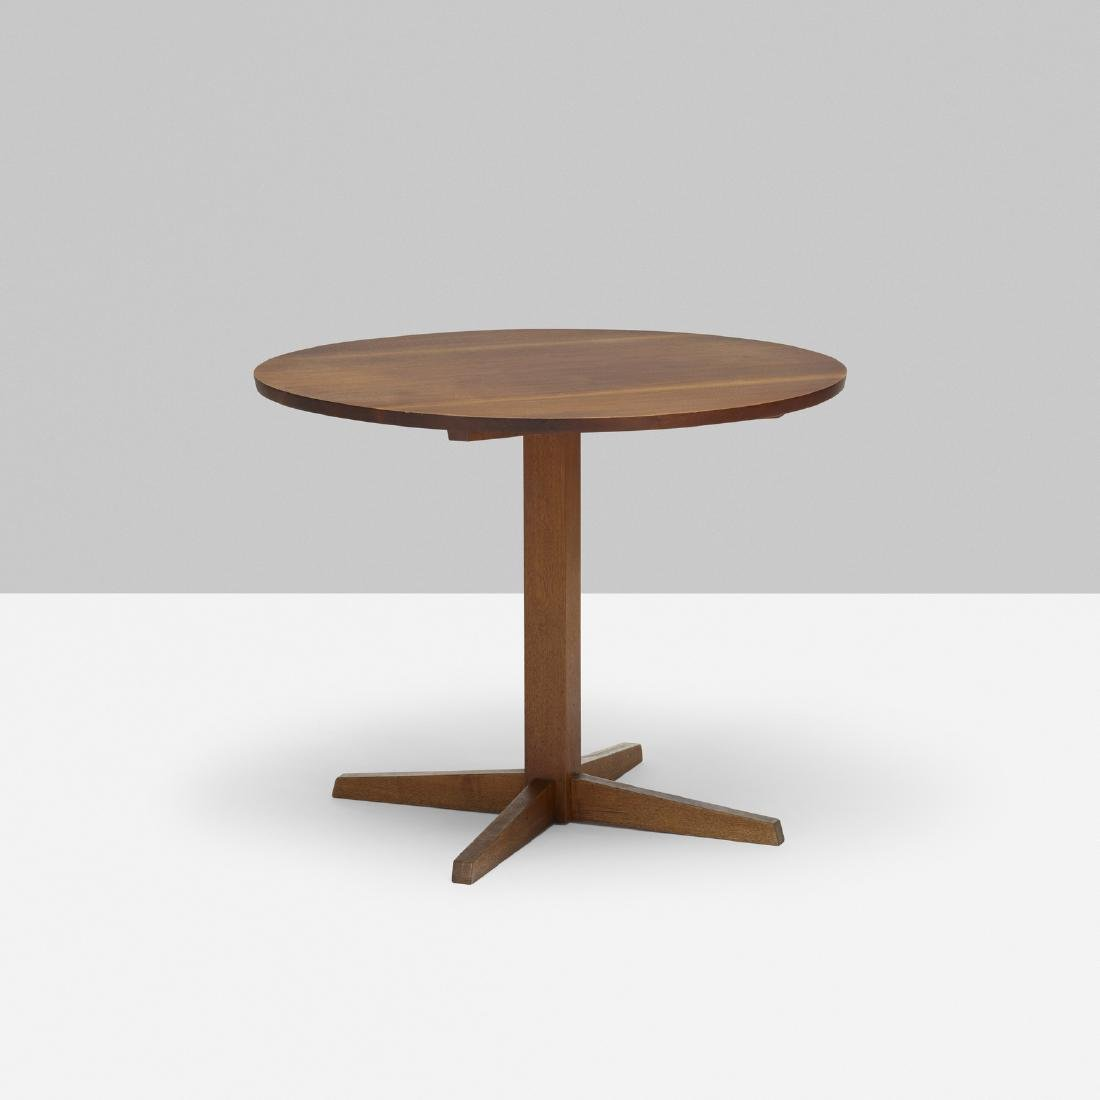 George Nakashima, Round Pedestal table